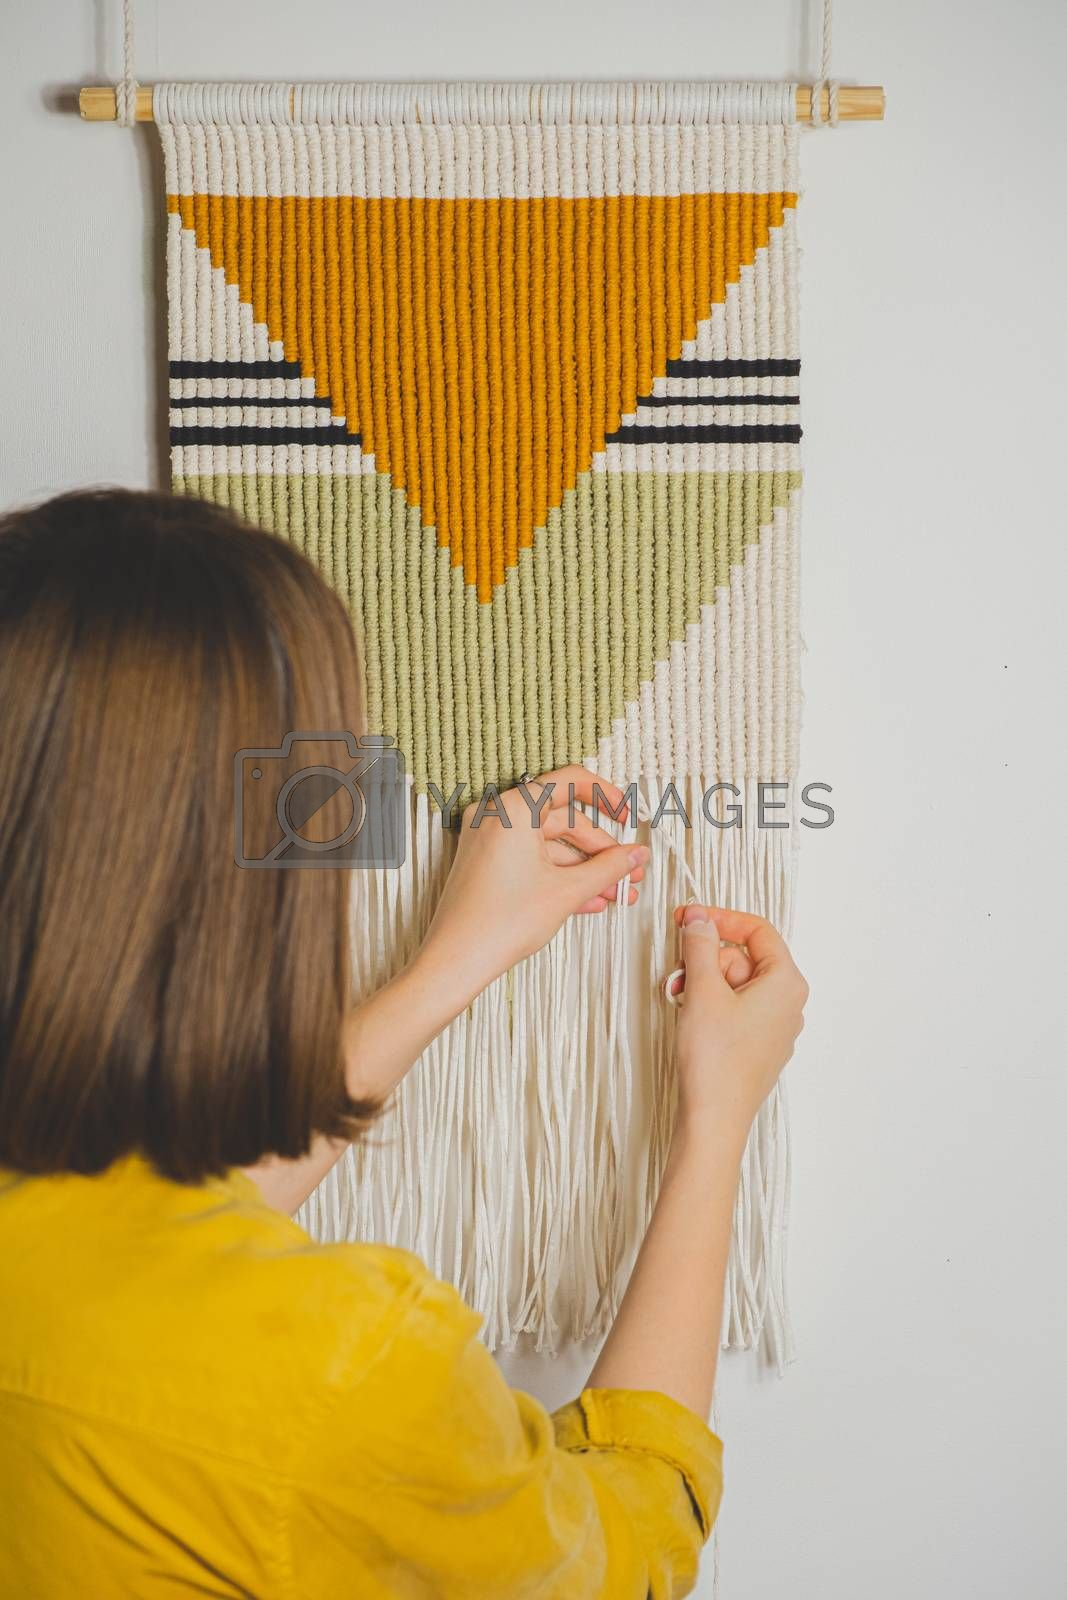 Woman doing macrame craft. Hand-making a cotton rope wall-hanging decor piece, concept of handicraft hobby or handworking